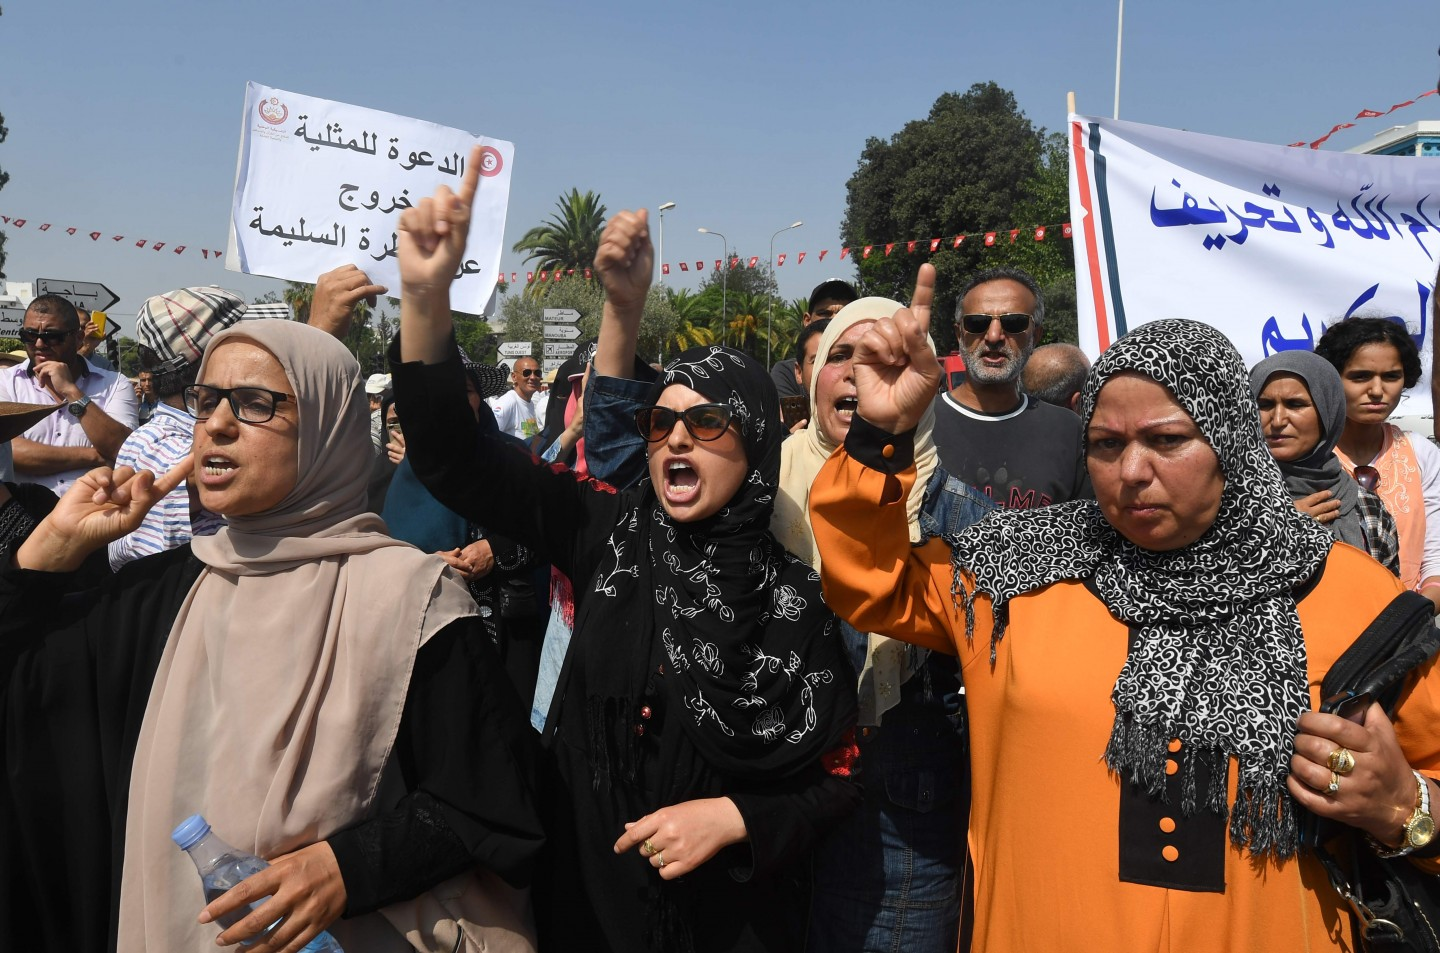 A commission set up by Tunisian President Beji Caid Essebsi to bring the legal code in line with the 2014 constitution adopted after the Arab Spring uprising, unveiled in June a raft of proposed liberal reforms. The photo shows hundreds of Tunisians holding pro-conservative signs during a protest against proposed reforms opposed by conservative Muslims that include equal inheritance rights for women and decriminalising homosexuality, on August 11, 2018 in Tunis. (Photo by Fethi Belaid/AFP)